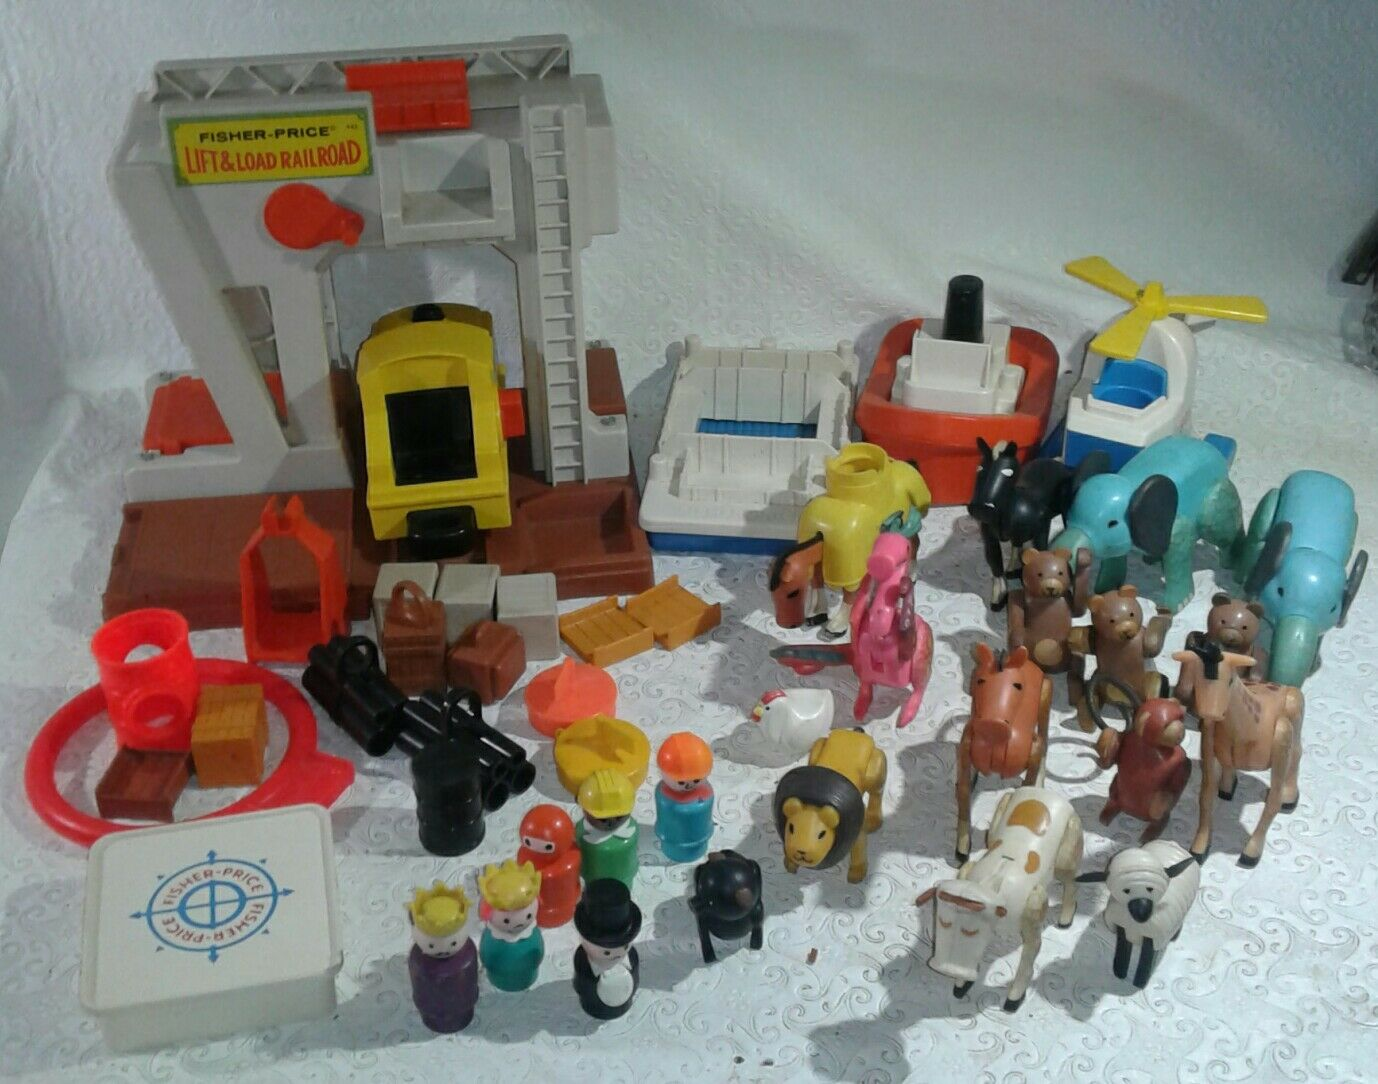 Vintage fisher price little people 945-943 parts lot +animals made made made in Hong Kong 863753